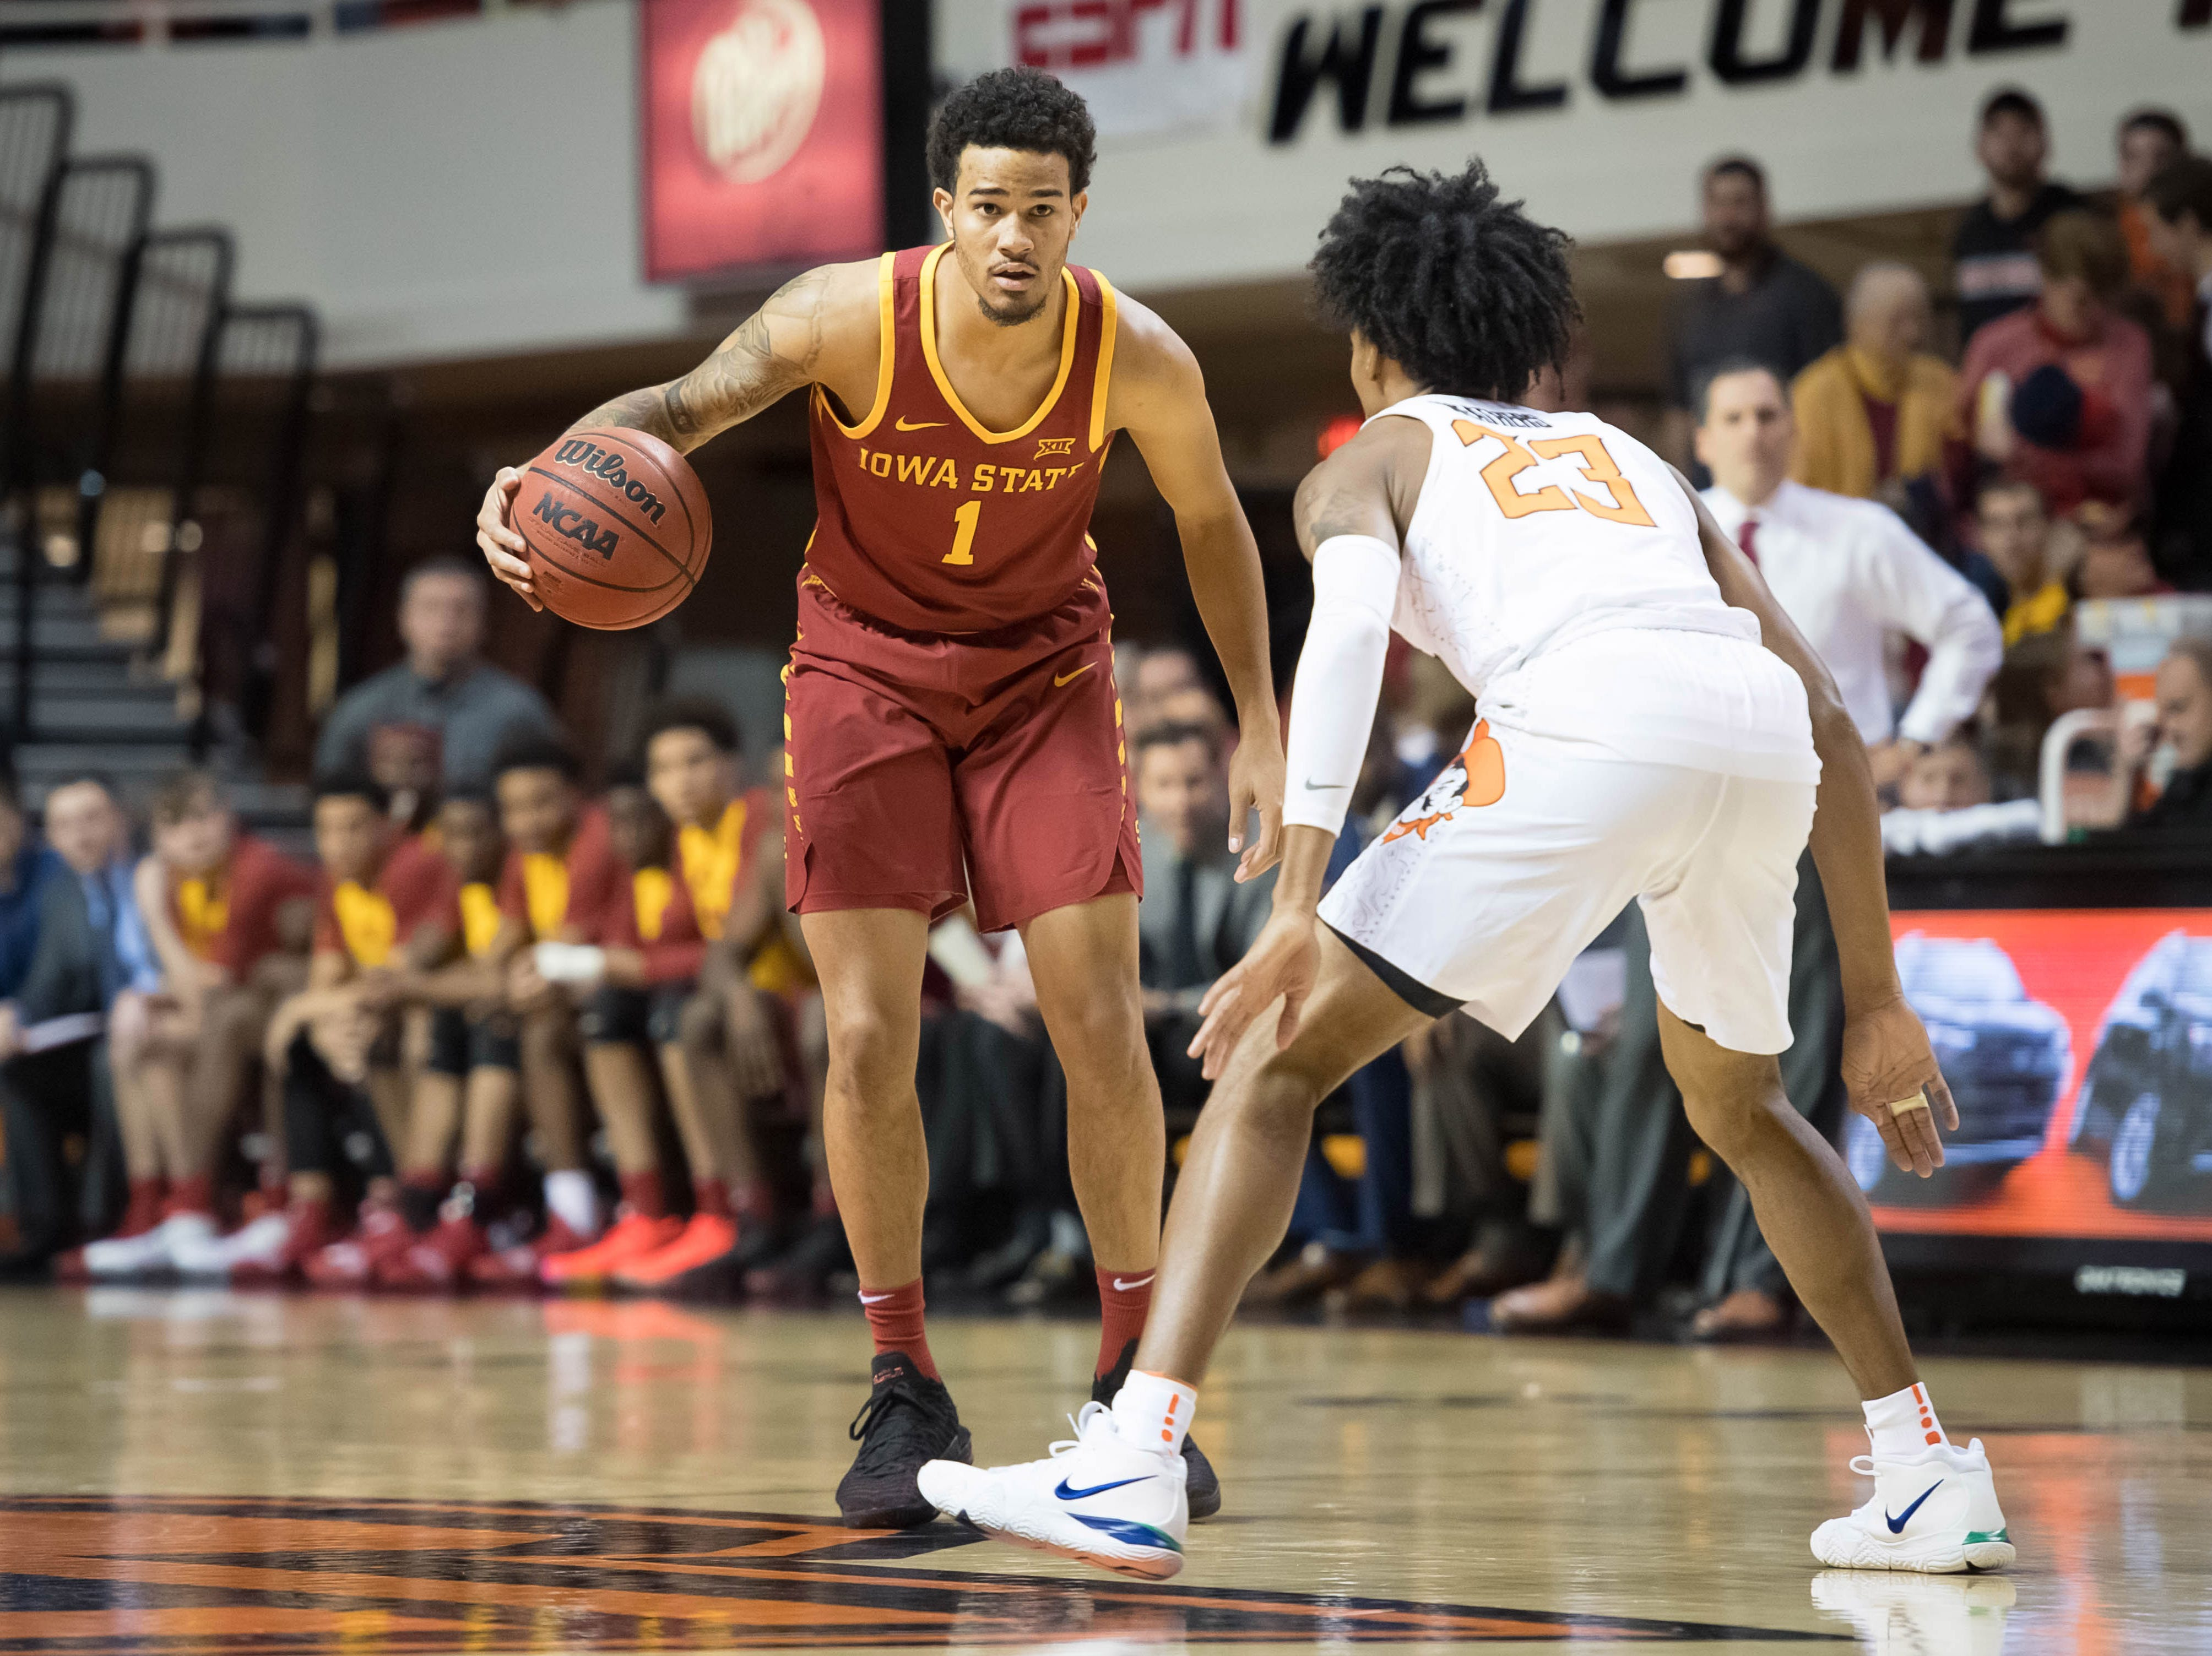 Jan 2, 2019; Stillwater, OK, USA; Iowa State Cyclones guard Nick Weiler-Babb (1) dribbles the ball as Oklahoma State Cowboys guard Michael Weathers (23) defends during the first half at Gallagher-Iba Arena.